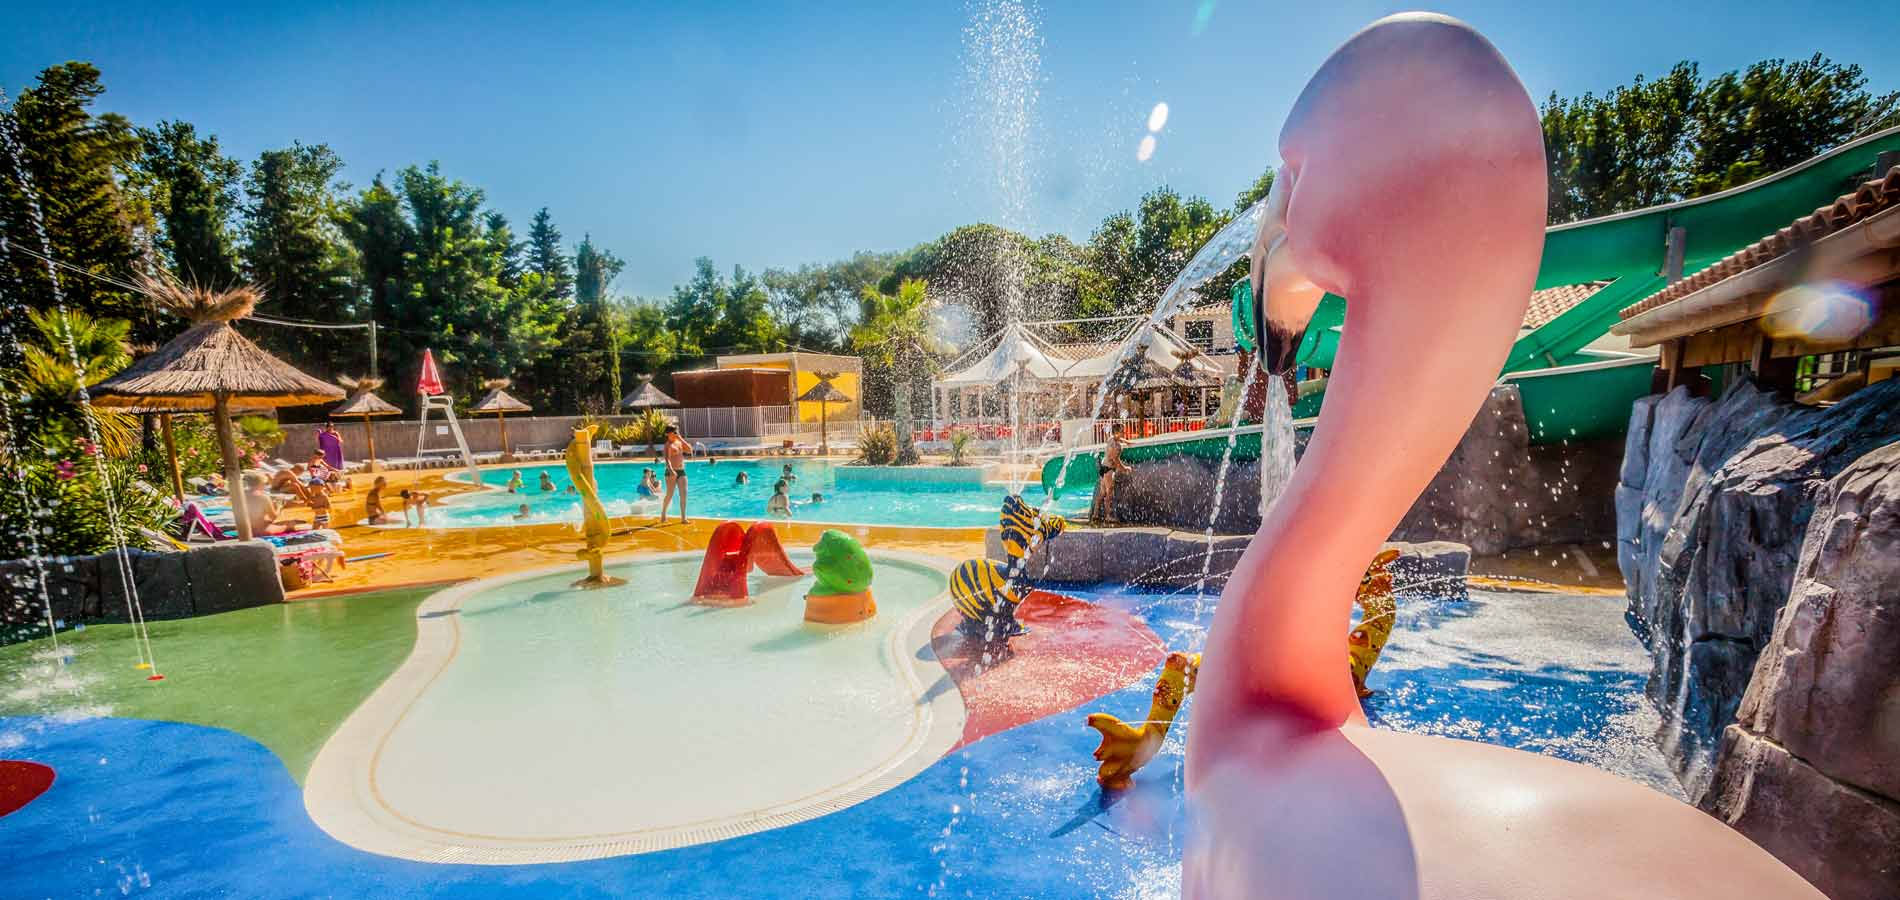 Camping h rault camping 4 toiles vias vacances vias for Piscine olympique montpellier